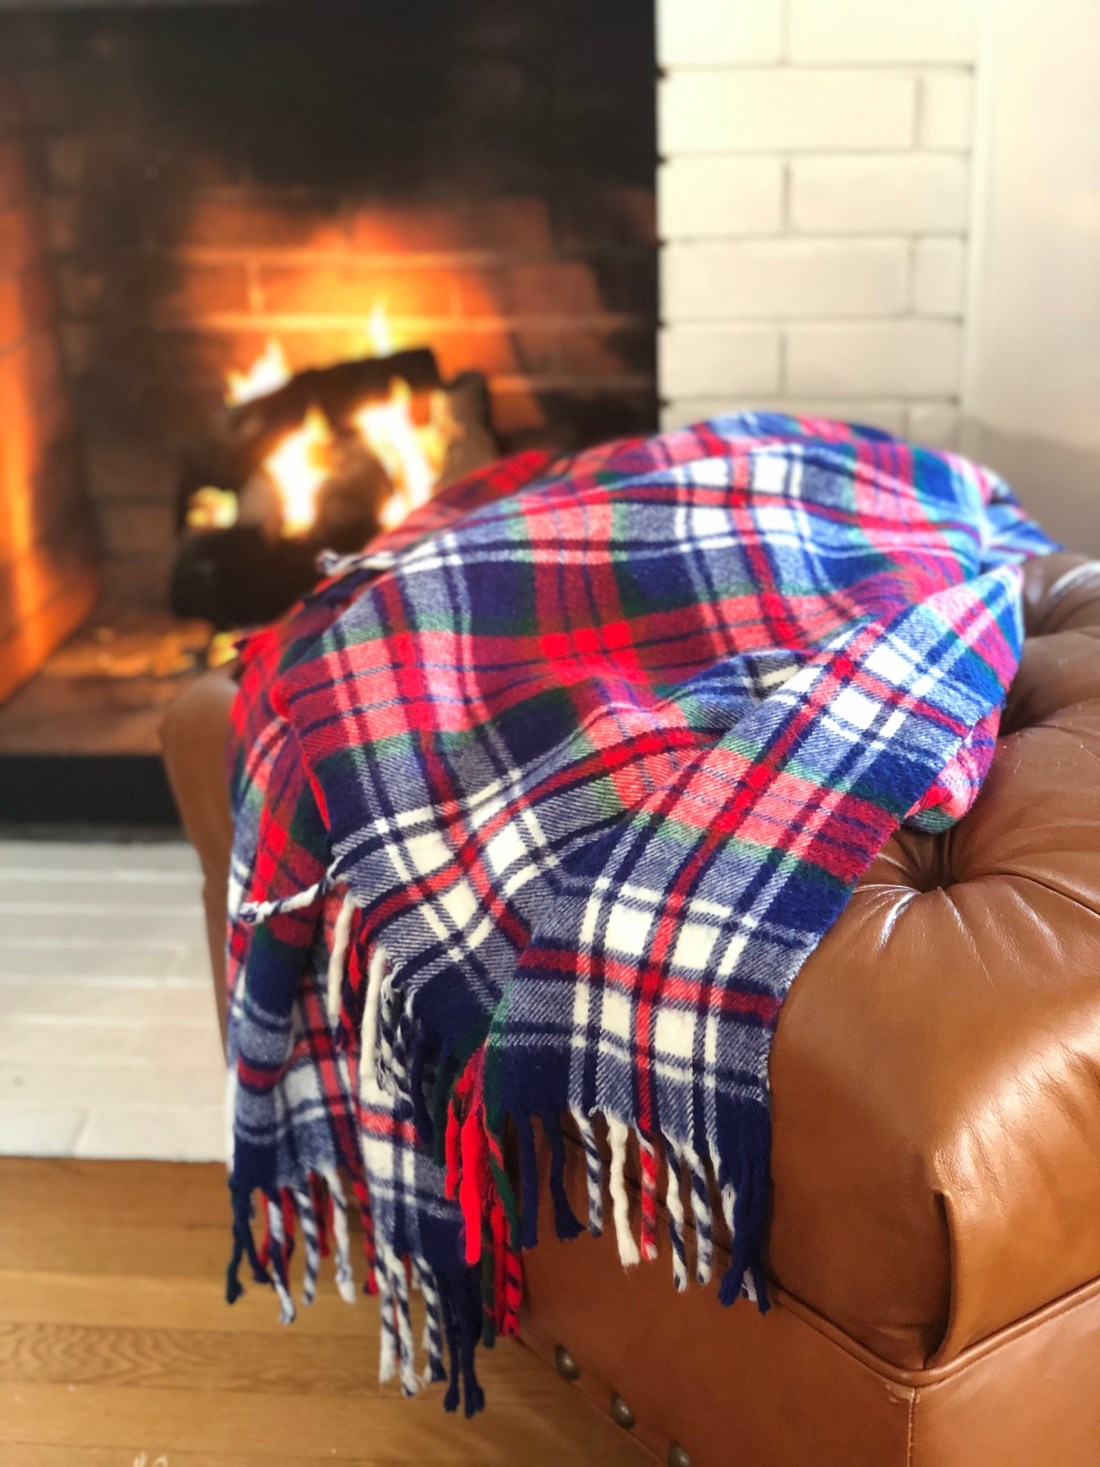 Red, green, and blue plaid blanket on leather ottoman in front of fire